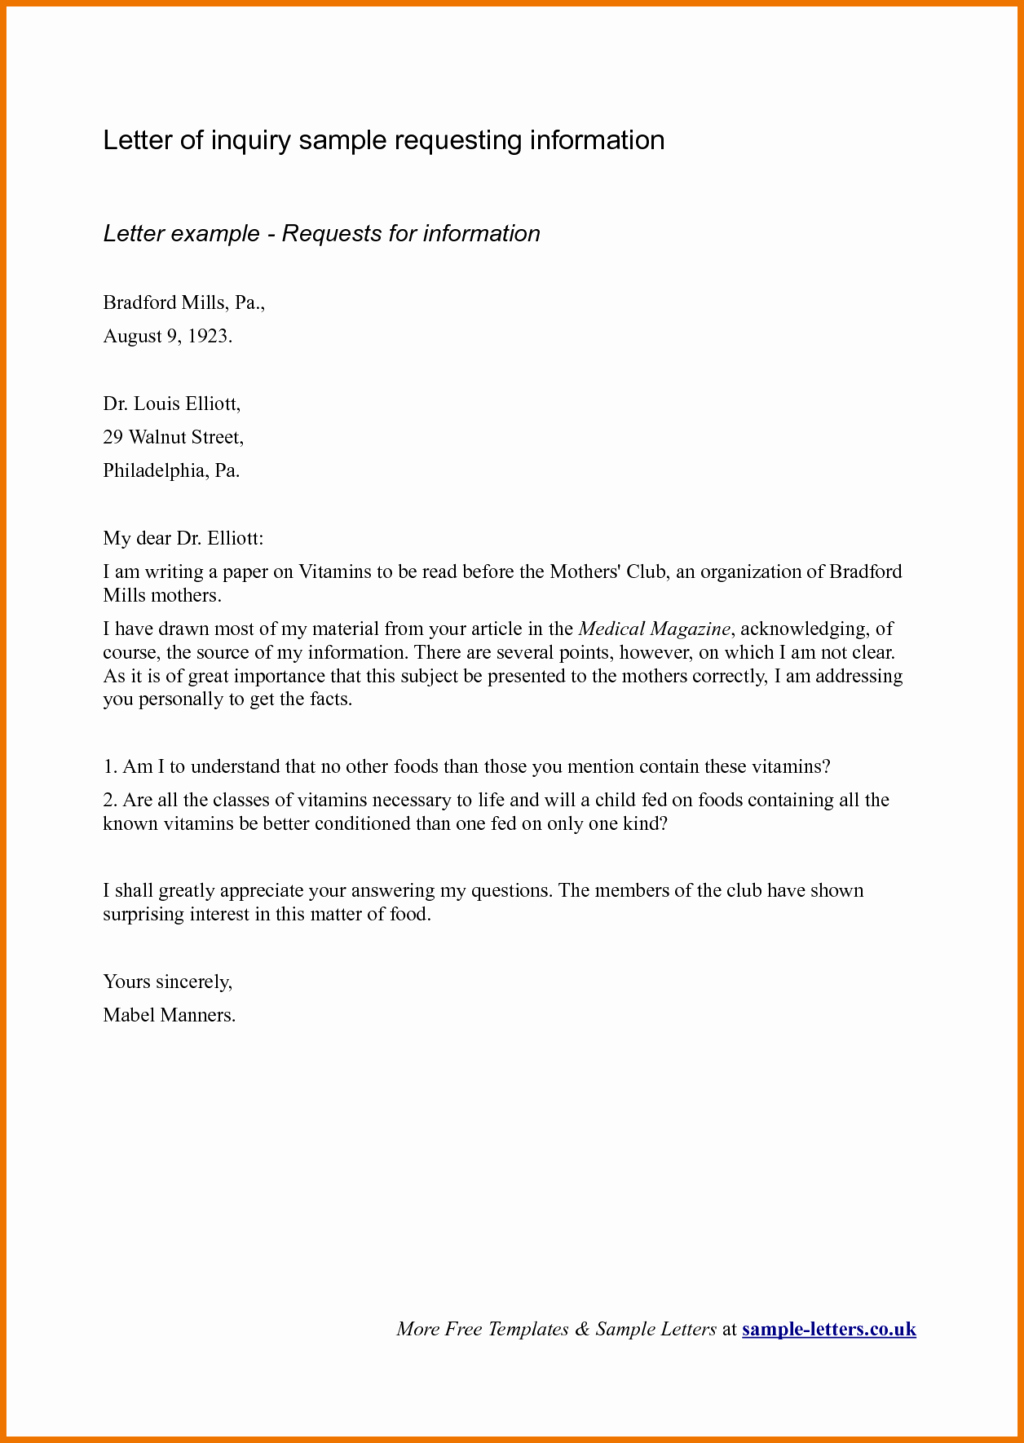 Free Business Letter Template Luxury Business Inquiry Letter Sample for Requesting Information